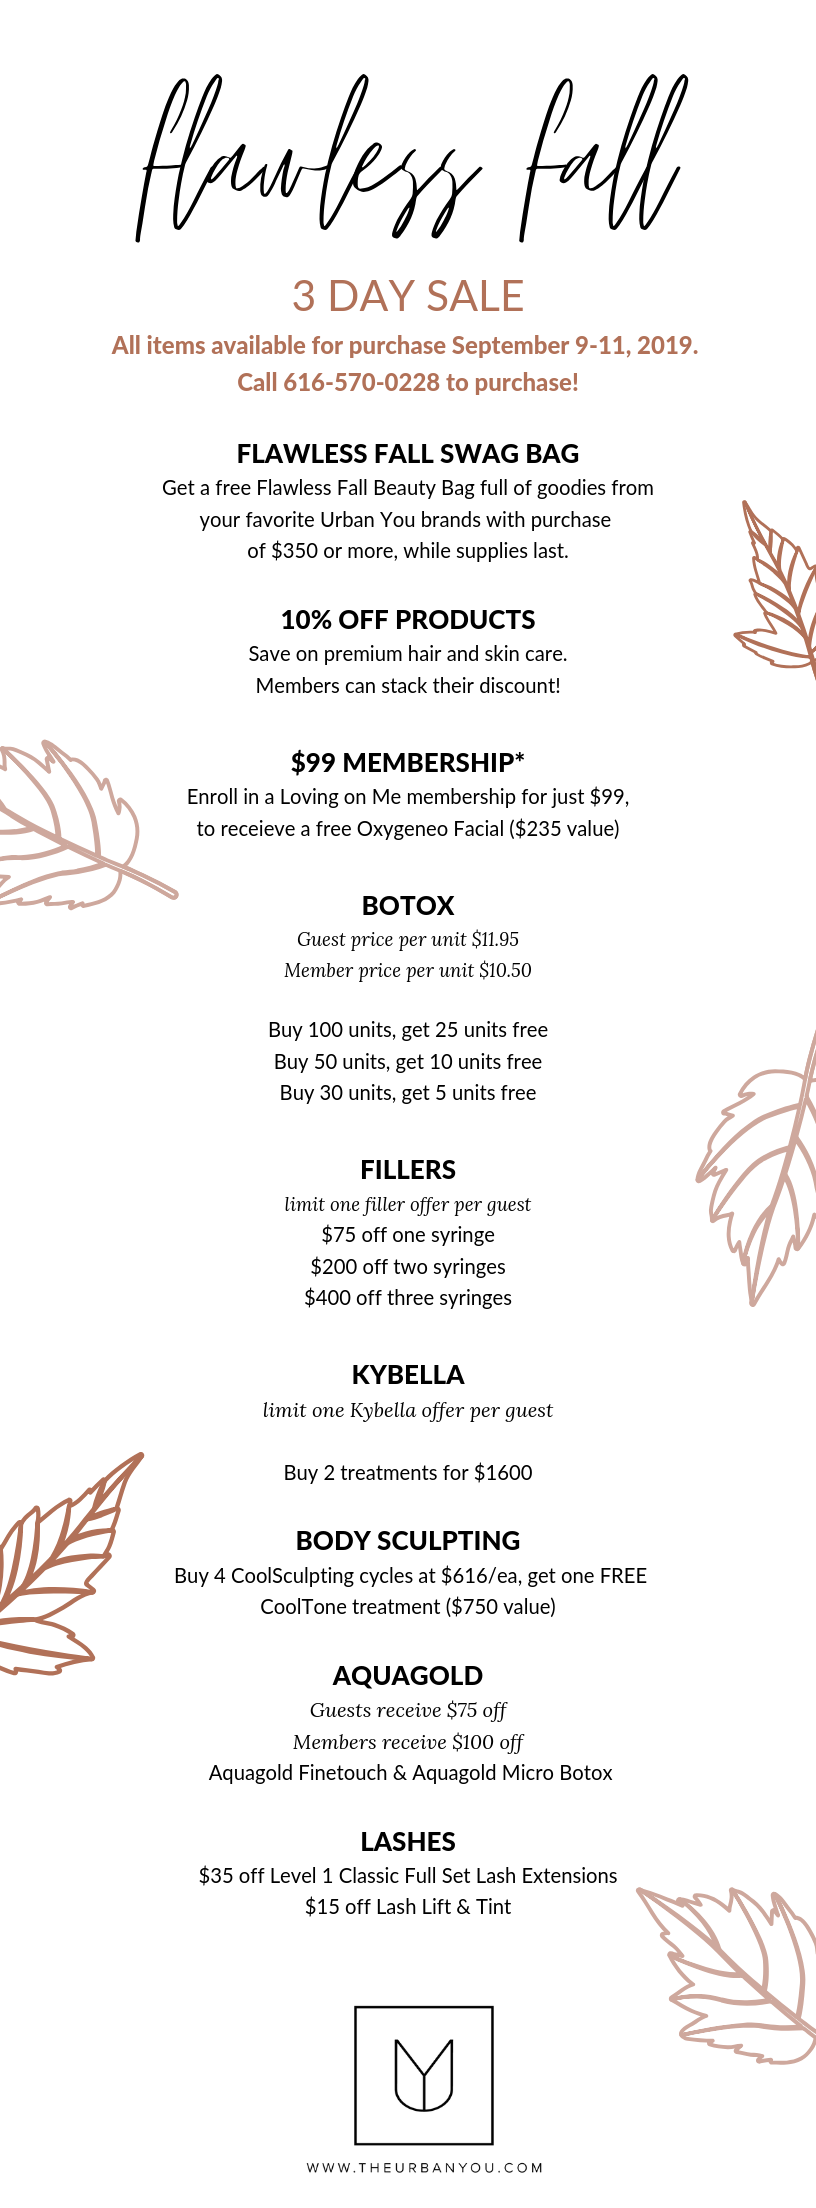 FLAWLESS FALL - FULL PROMO LIST.png